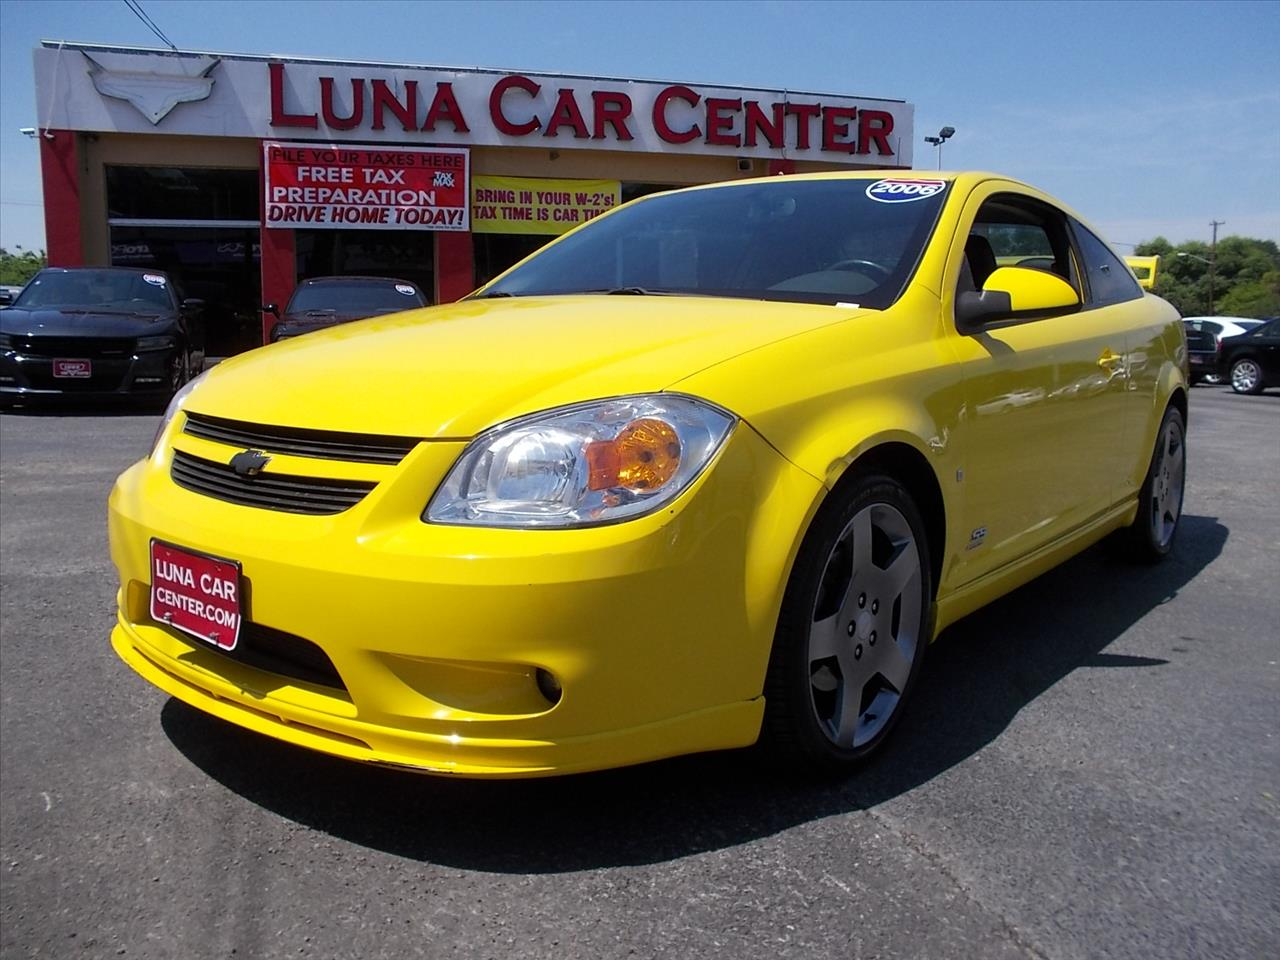 All Types cobalt 2006 : 2006 Chevrolet Cobalt SS 2dr Coupe w/2.0L S/C w/ Front and Rear ...